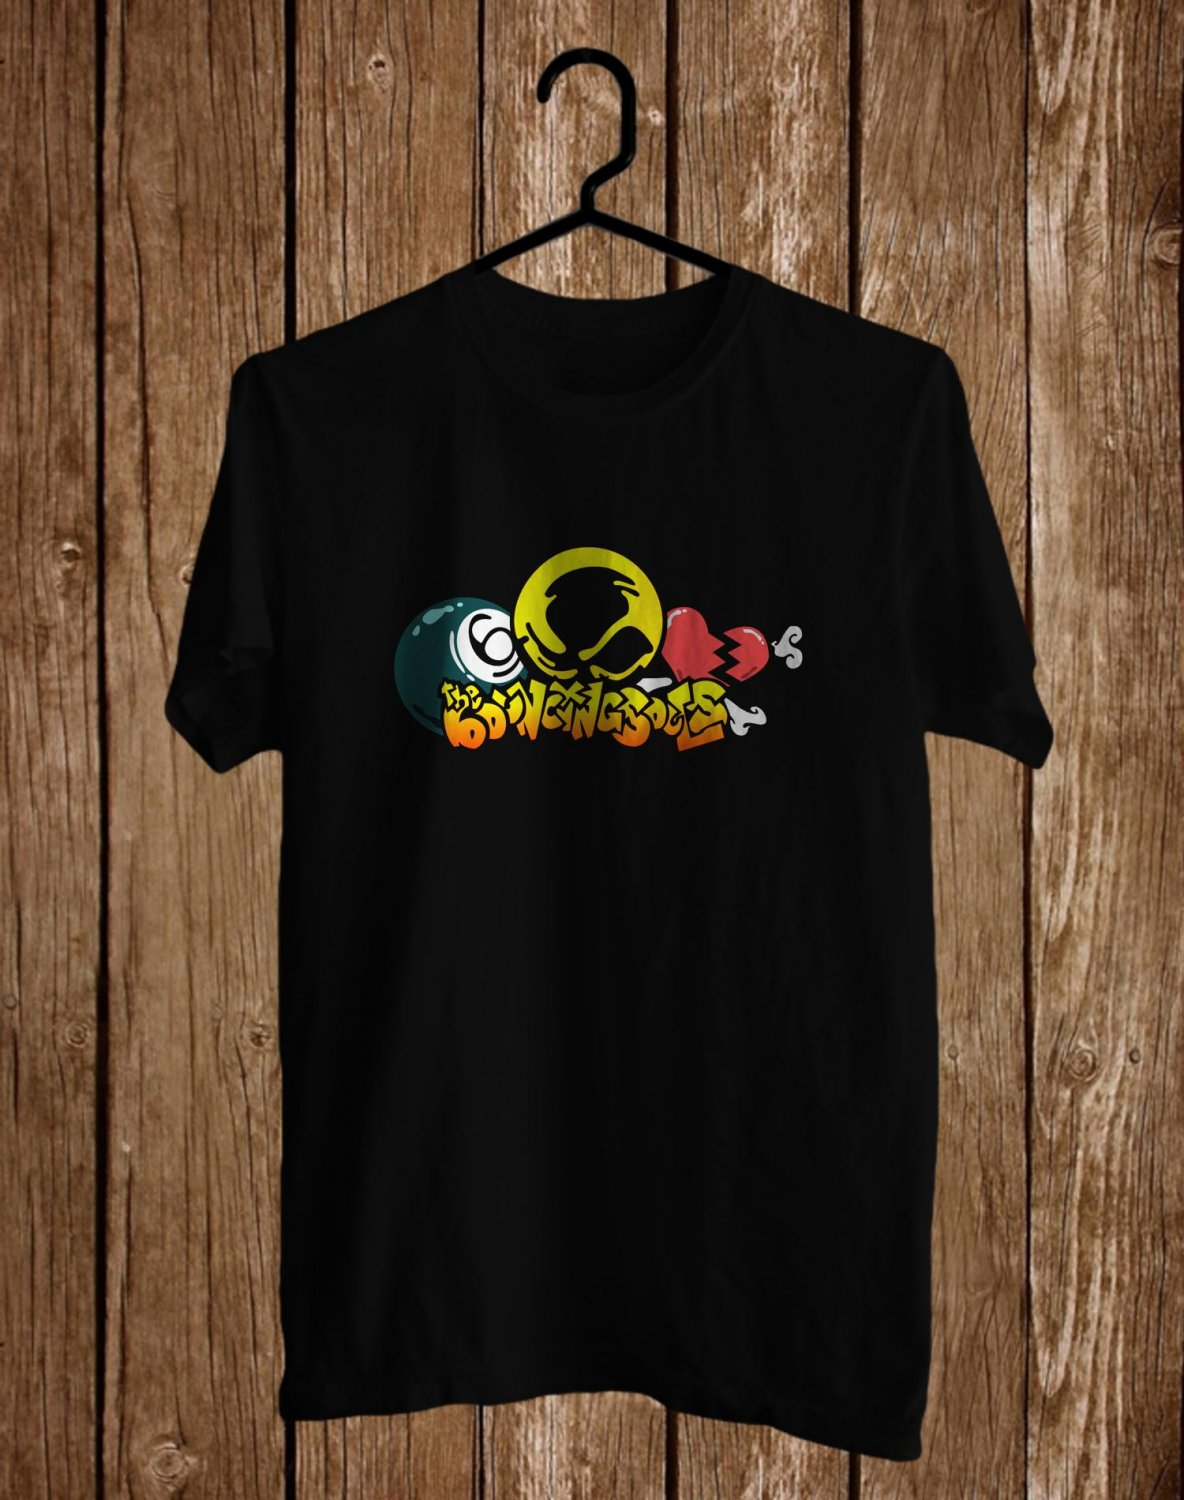 The Bouncing Souls Black Tee's Front Side by Complexart